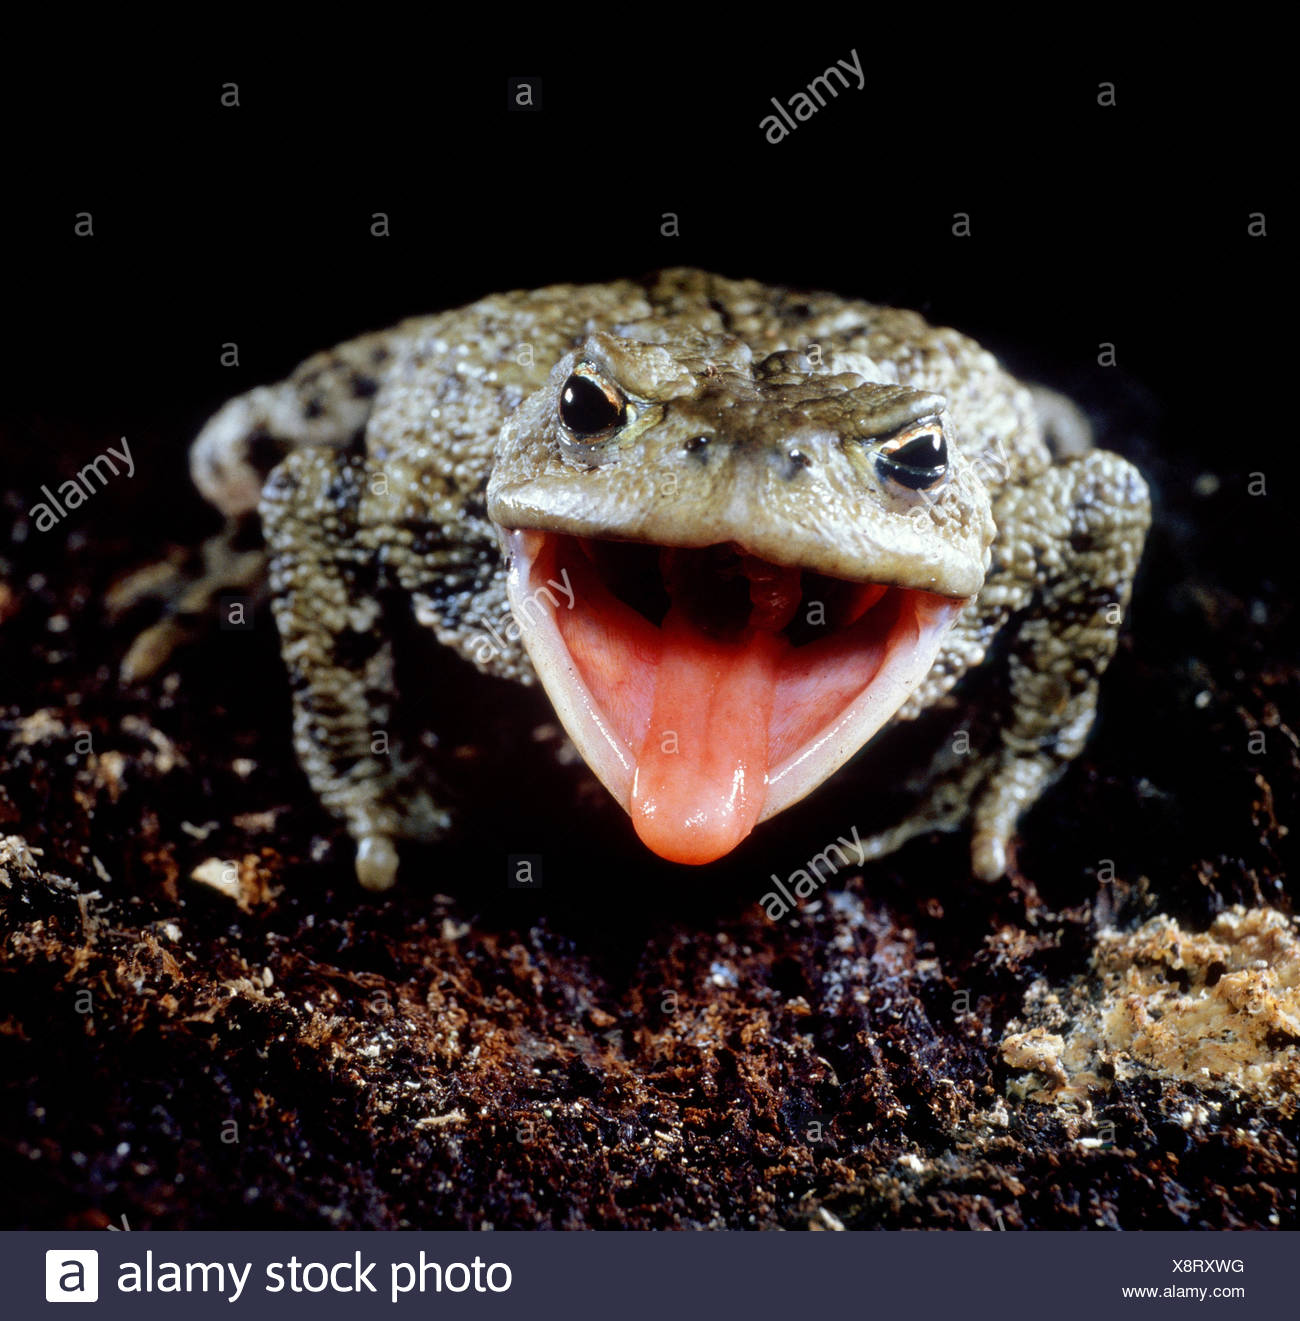 Catching Up With Newt >> Eats Amphibians Stock Photos & Eats Amphibians Stock Images - Alamy